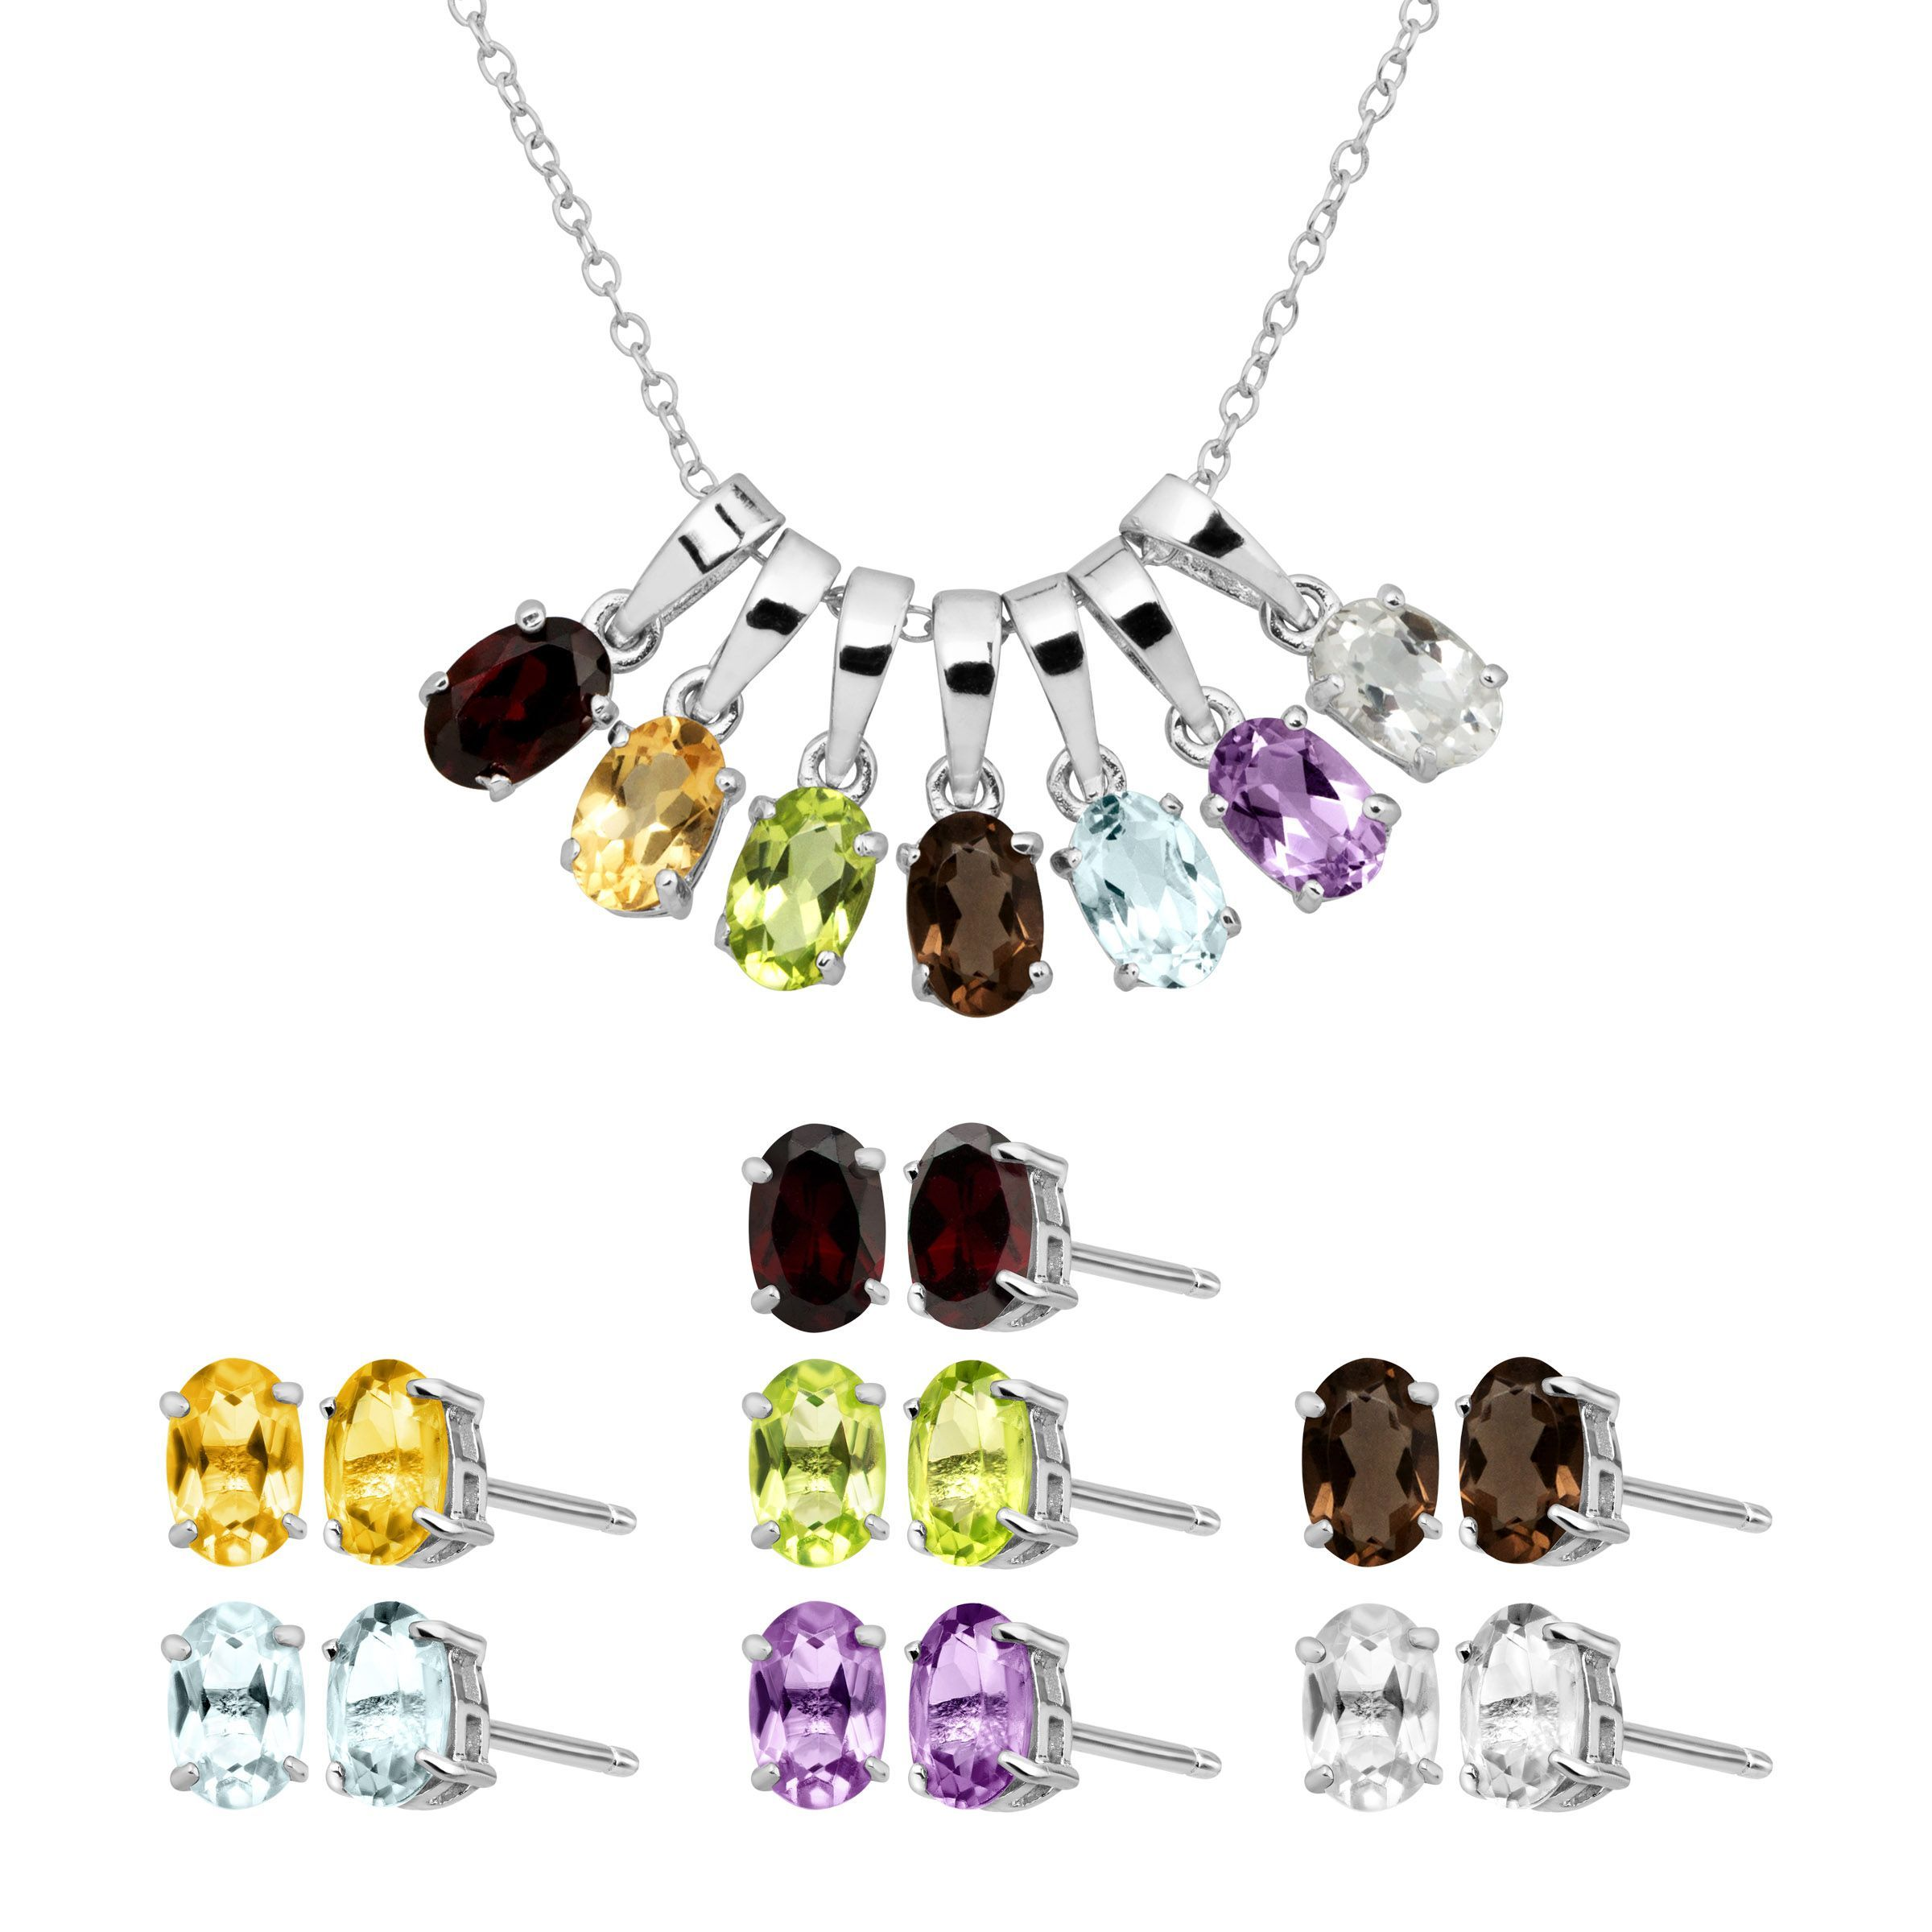 necklace dainty stone finish rainbow multi karlas layering collections gemstone products